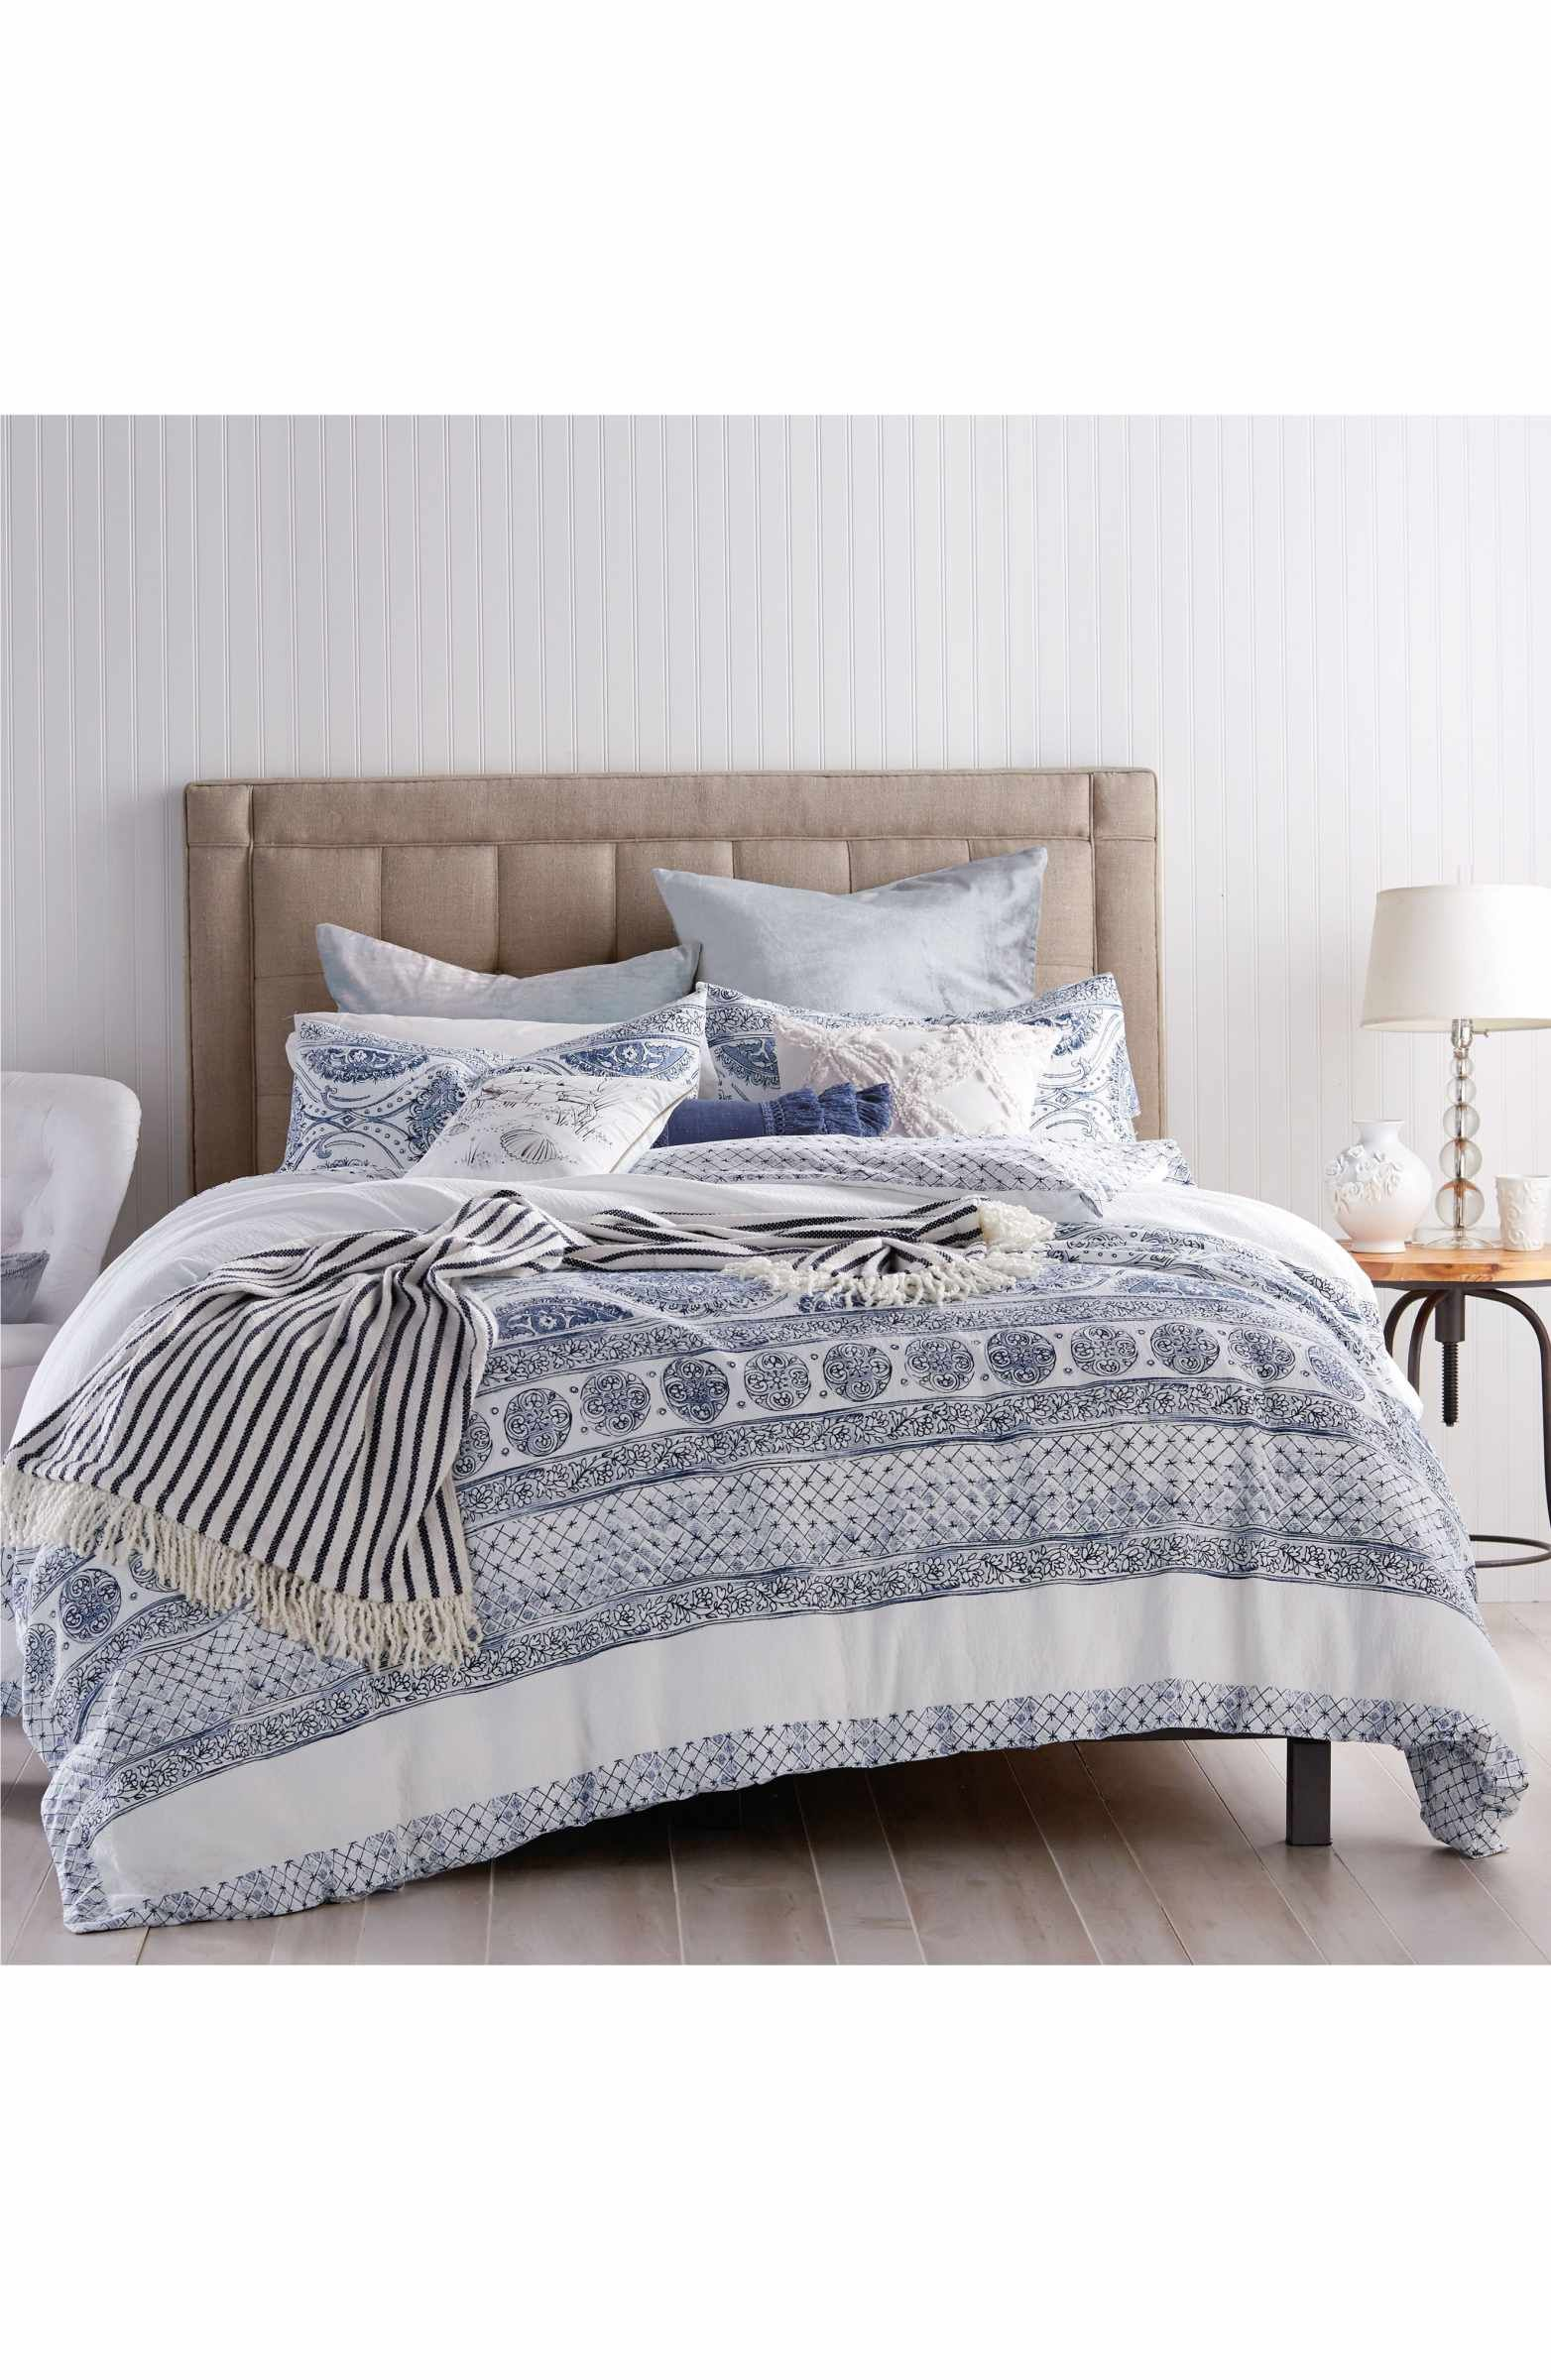 snazzy design organic covers er size of duvet west home comforter elm canada large ideas grand matelasse stone sparkling braided sets full new barn linen king pottery cover queen potterybarn reviews duvets